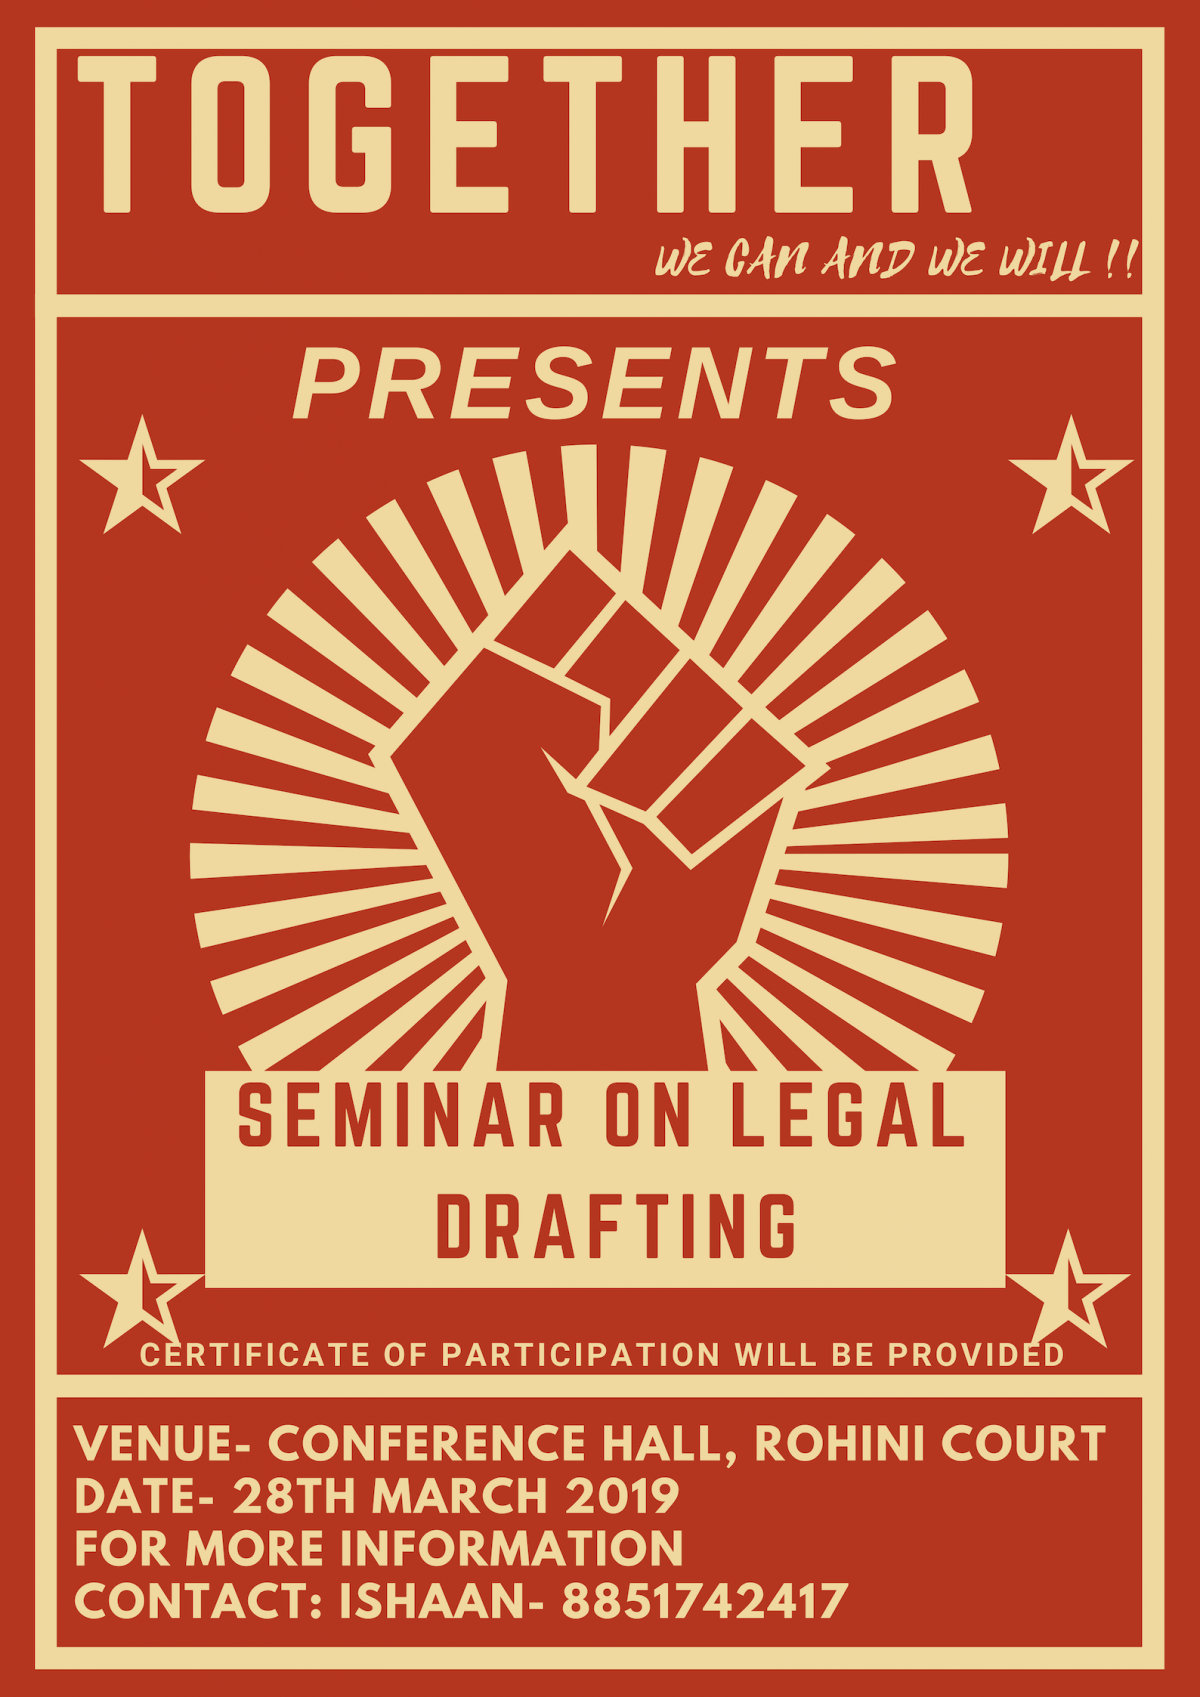 Seminar and Legal Drafting Competition on Legal Writing by Together NGO [March 28, Delhi]: Applications Open